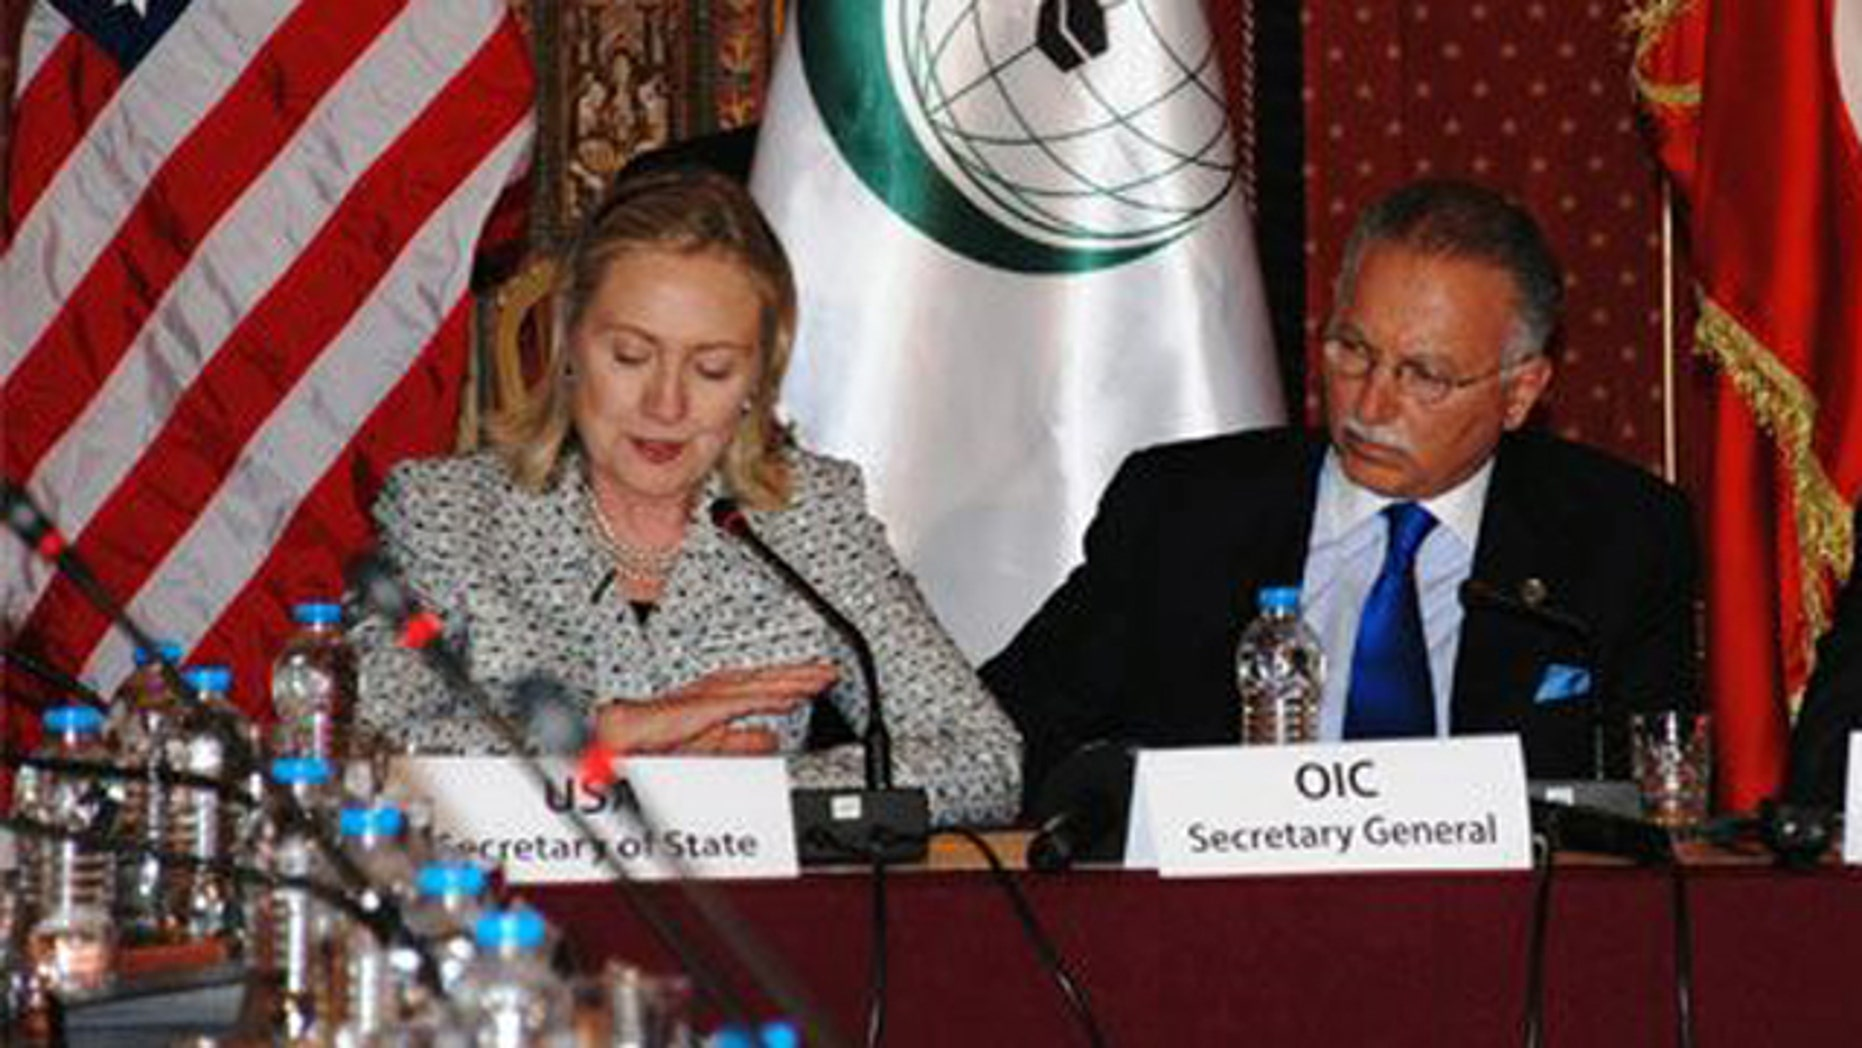 July 15, 2011: Shown here are Secretary of State Hillary Clinton and OIC Secretary General Ekmeleddin Ihsanoglu at a meeting in Istanbul.